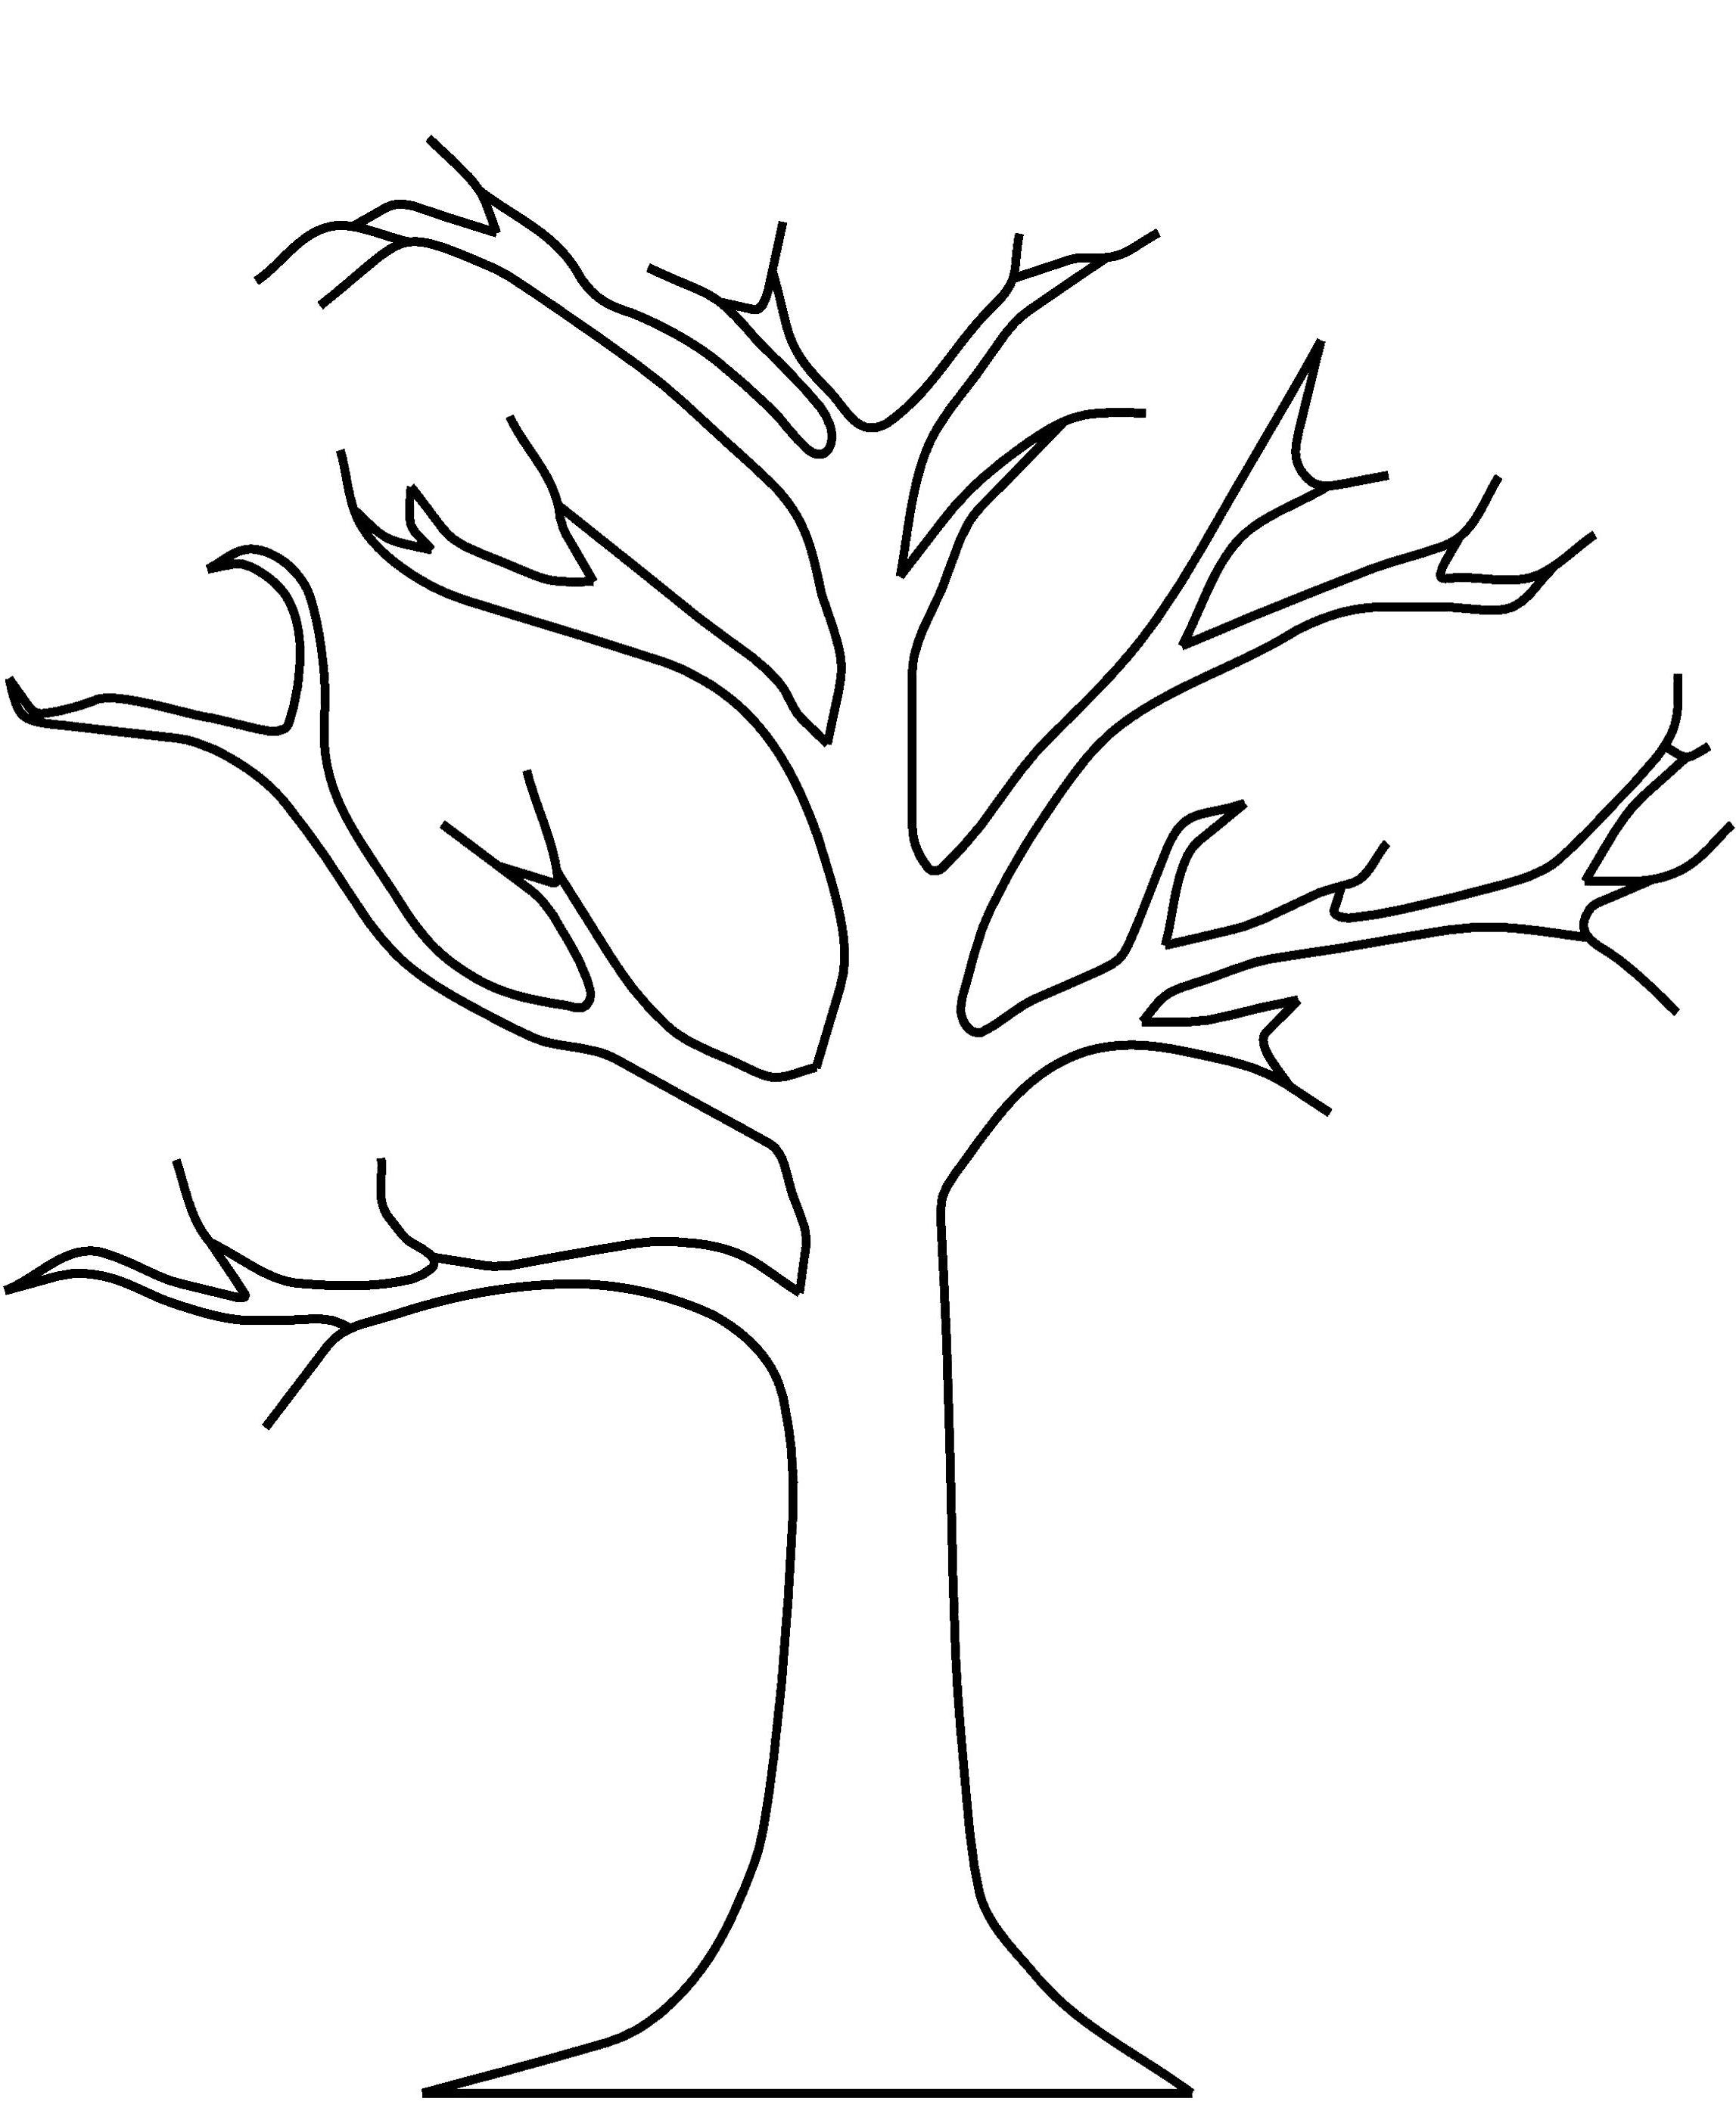 Tree without leaves clipart black and white clipart free Best 15 Top Leaf Black And White Tree No Leaves Clipart ... clipart free